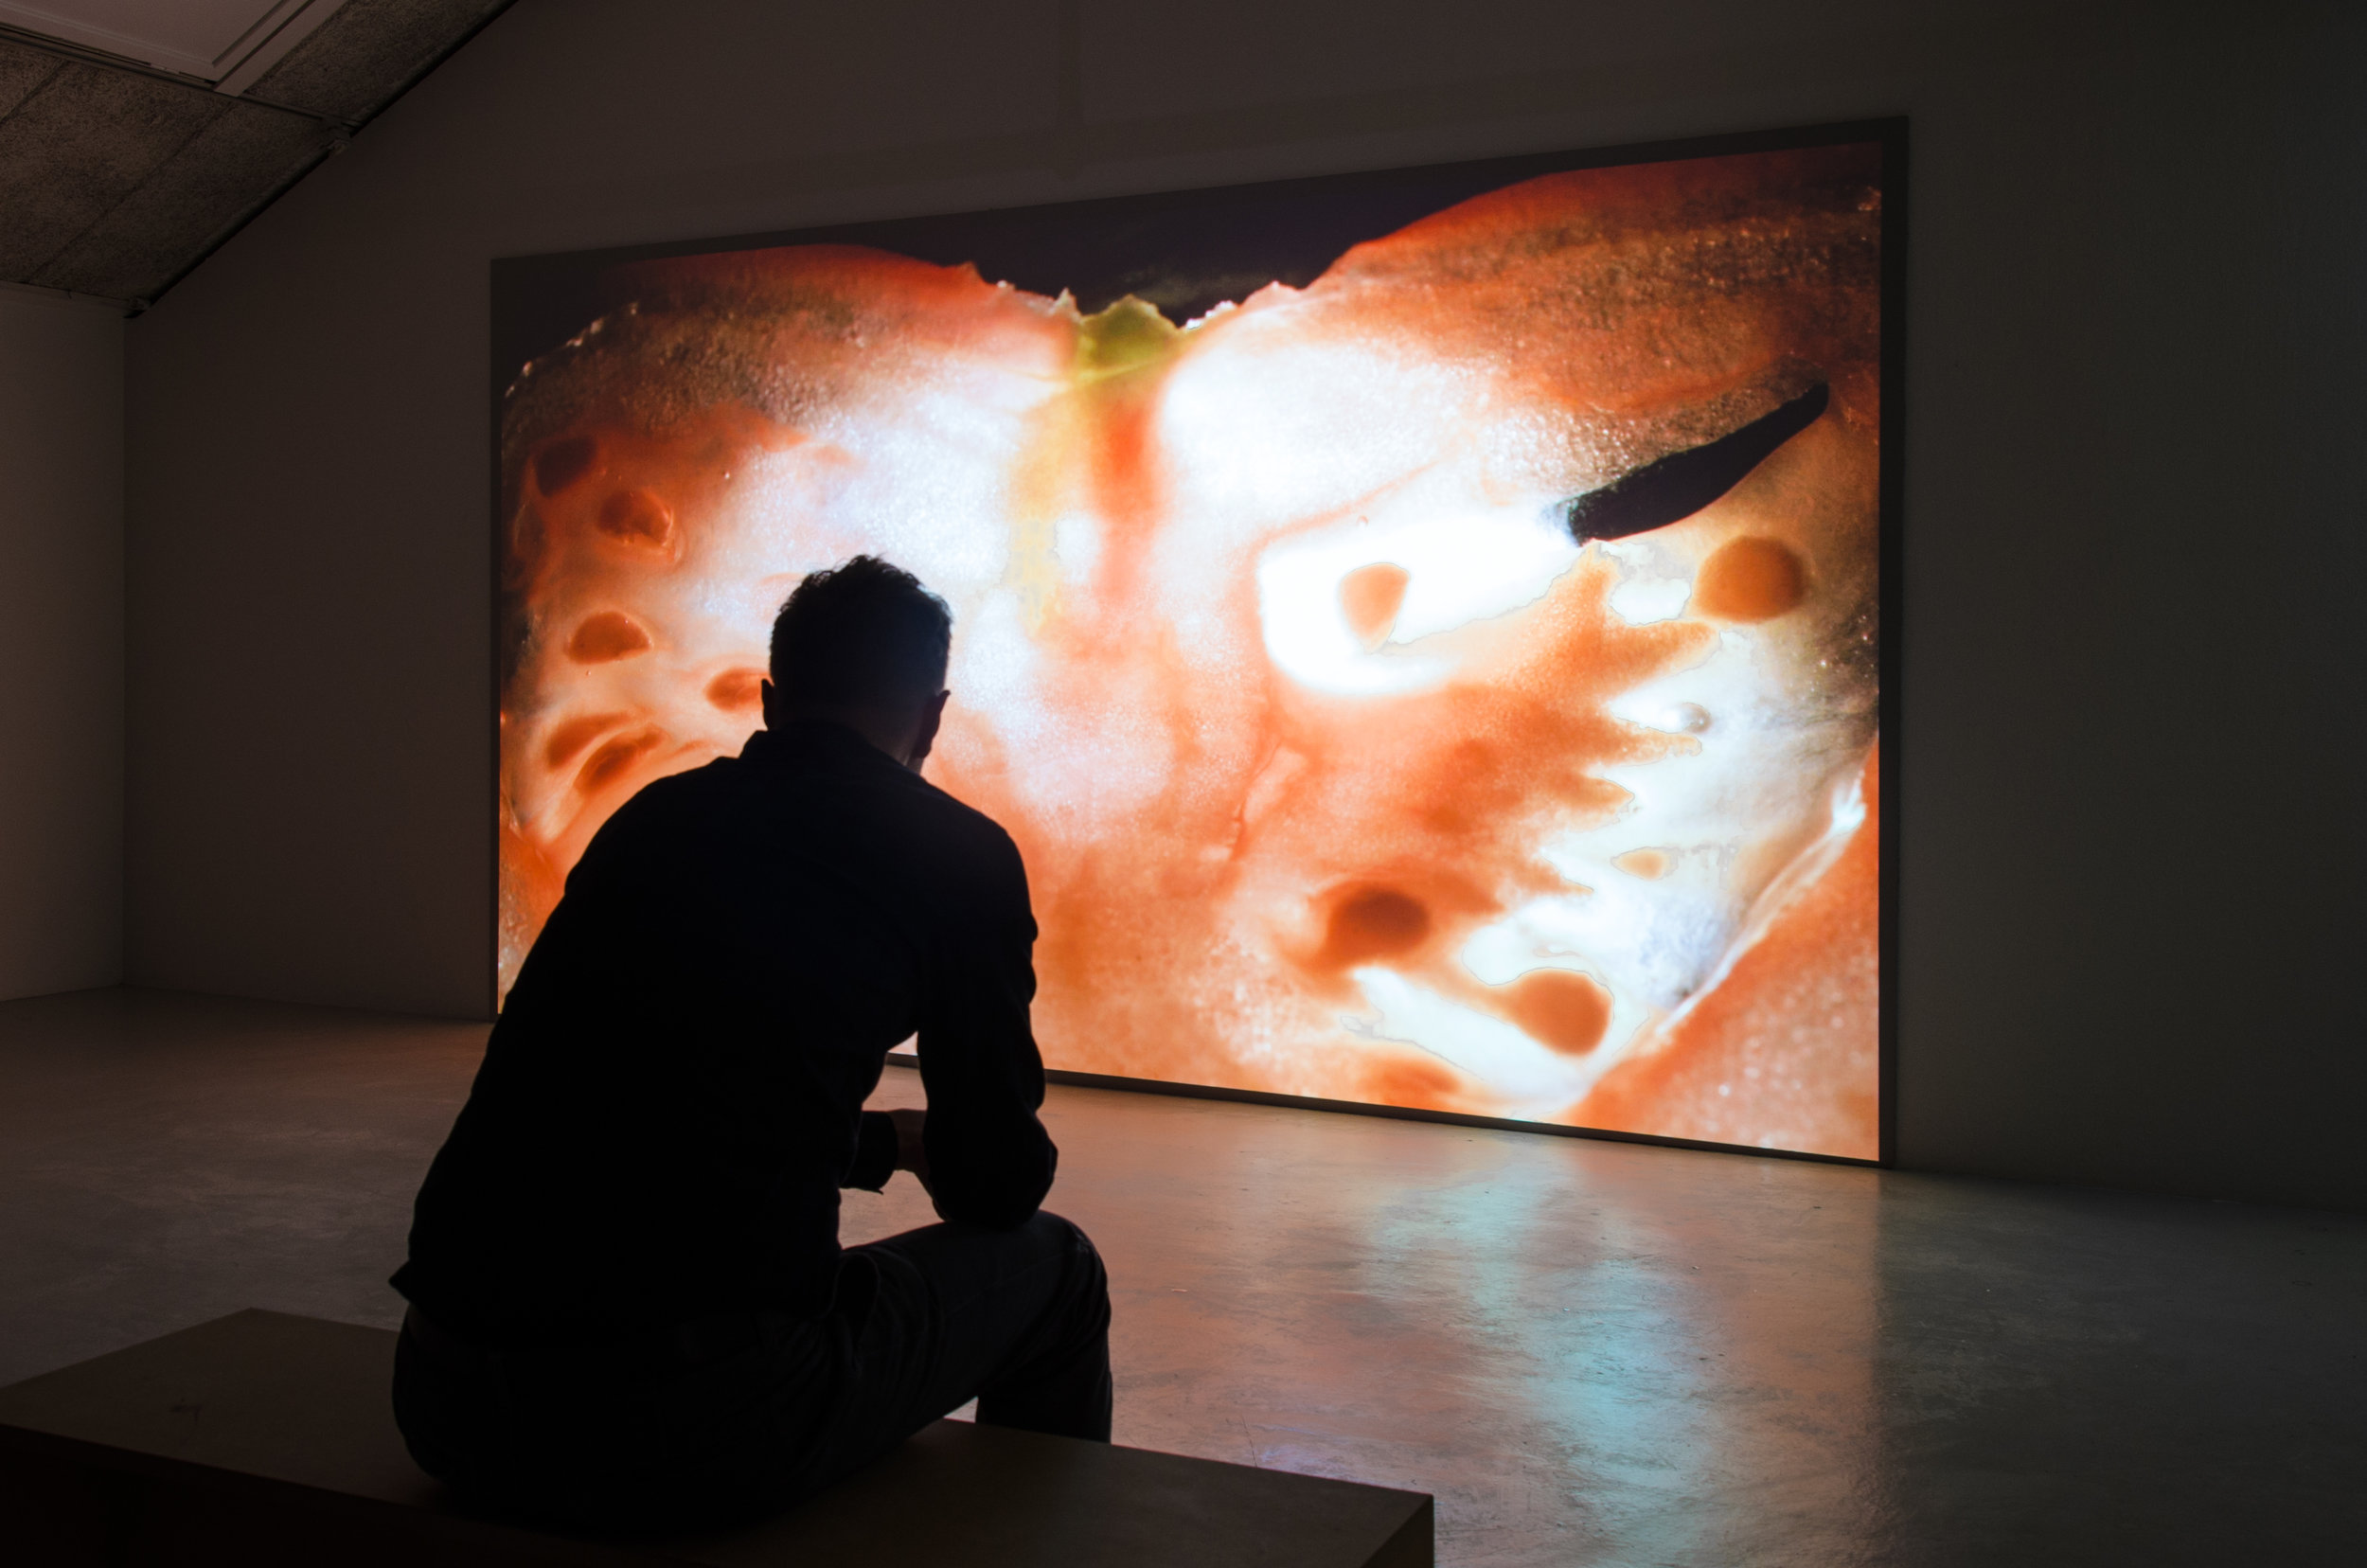 """Exhibition view, video projection of """"Earth and Reveries of Repose—Reveries of Material Interiority"""", 2015, HD video, 23:52 min. Ram Gallery, Oslo, 2015"""